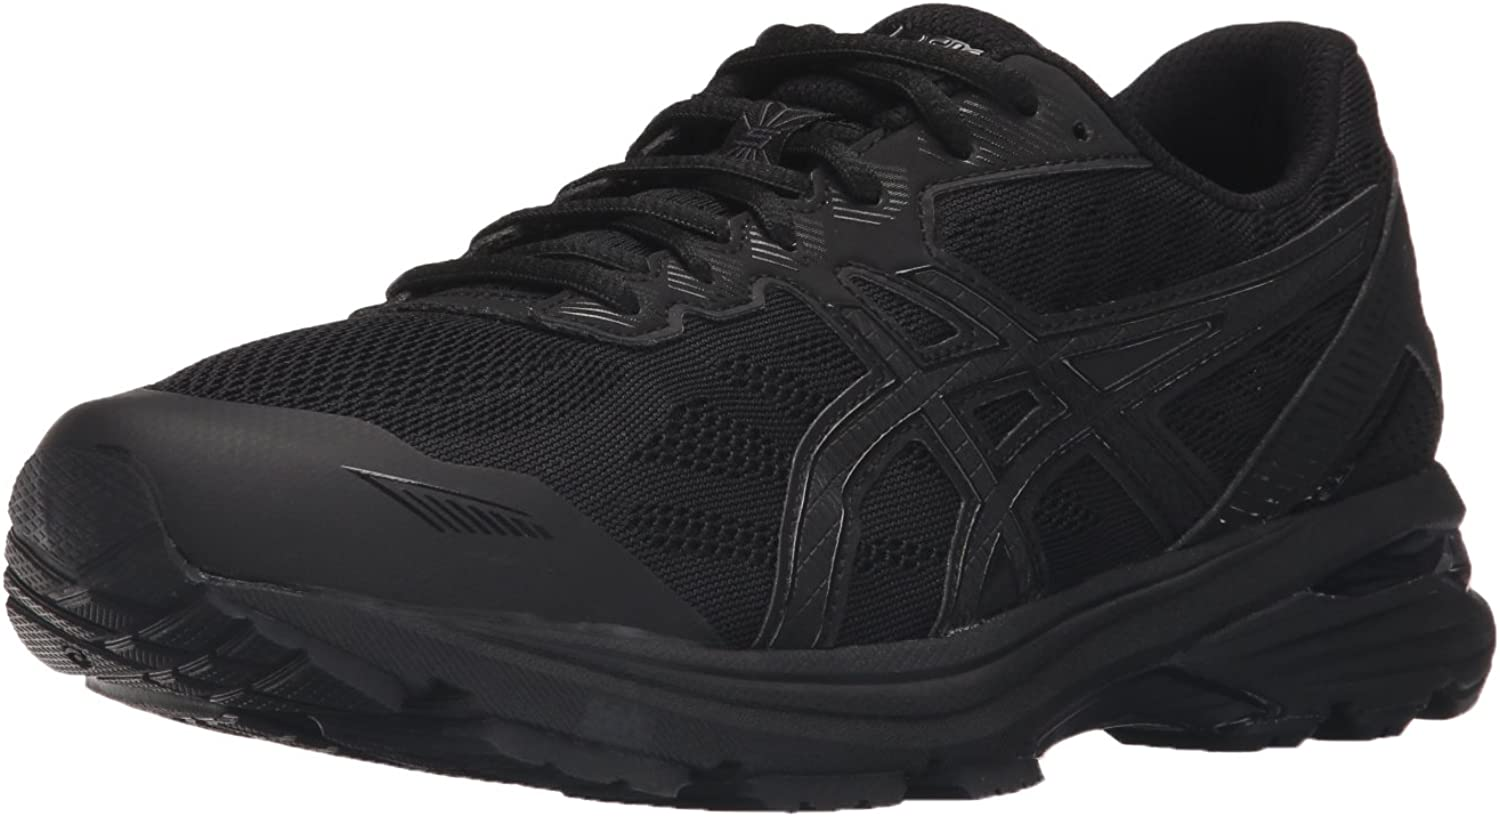 ASICS Womens Gt-1000 5 Running shoes